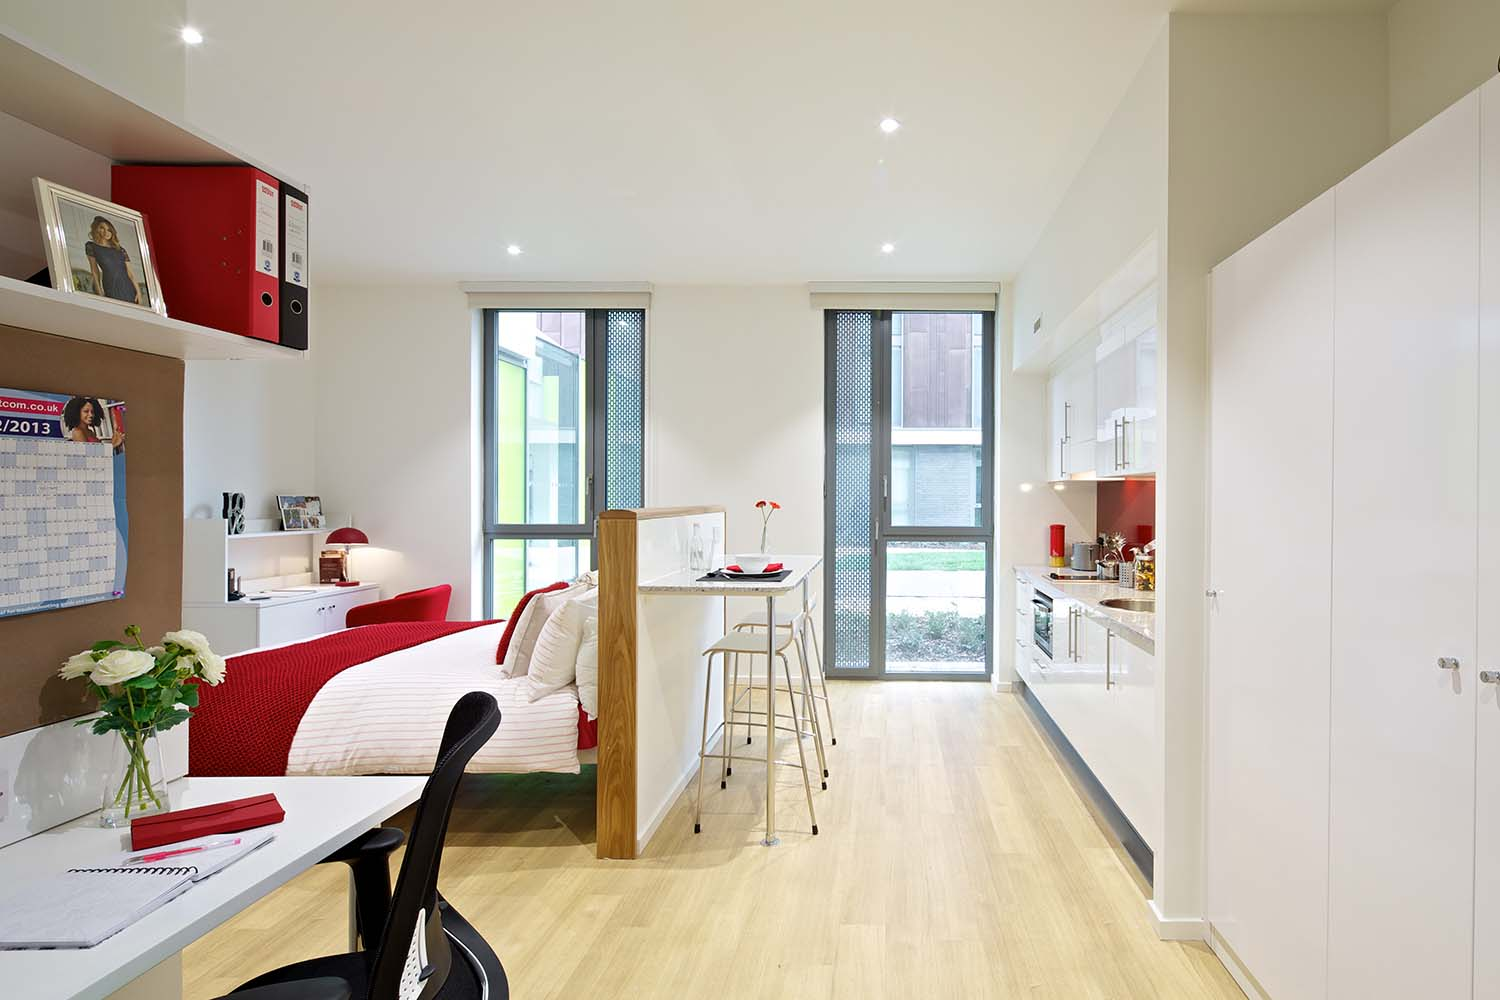 Postgraduate accommodation at GradPad Wood Lane Studios in White City